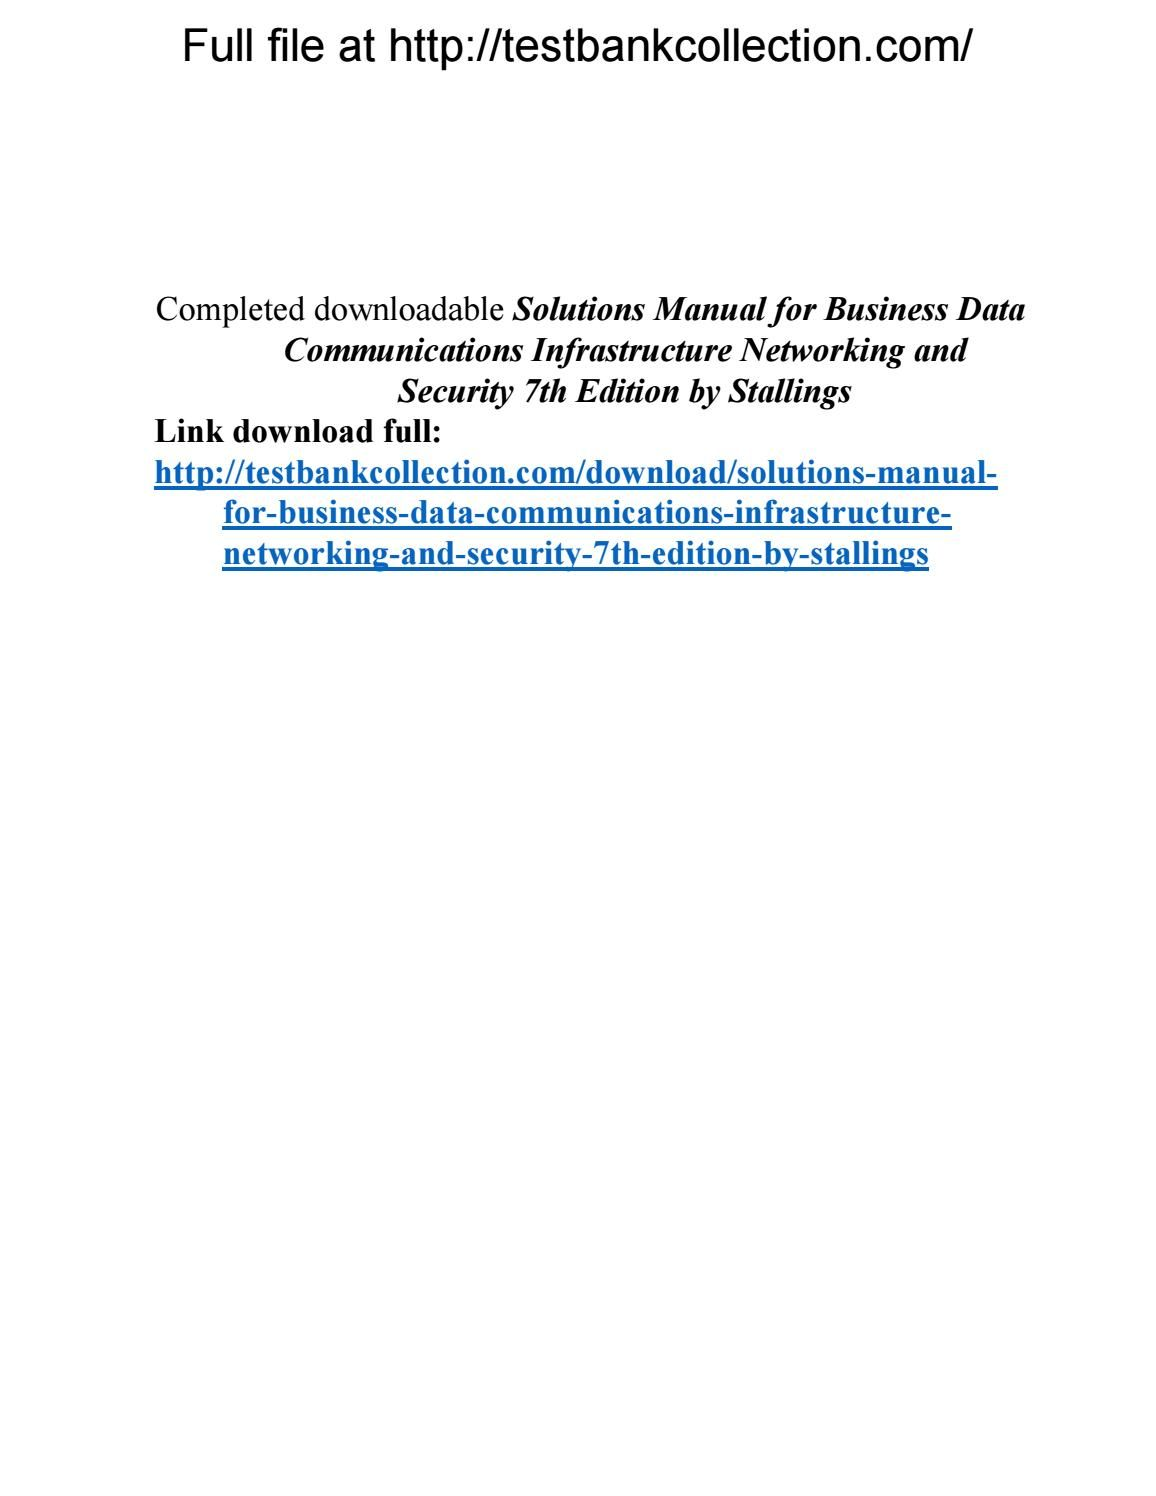 Solutions manual for business data communications infrastructure networking  and security 7th edition